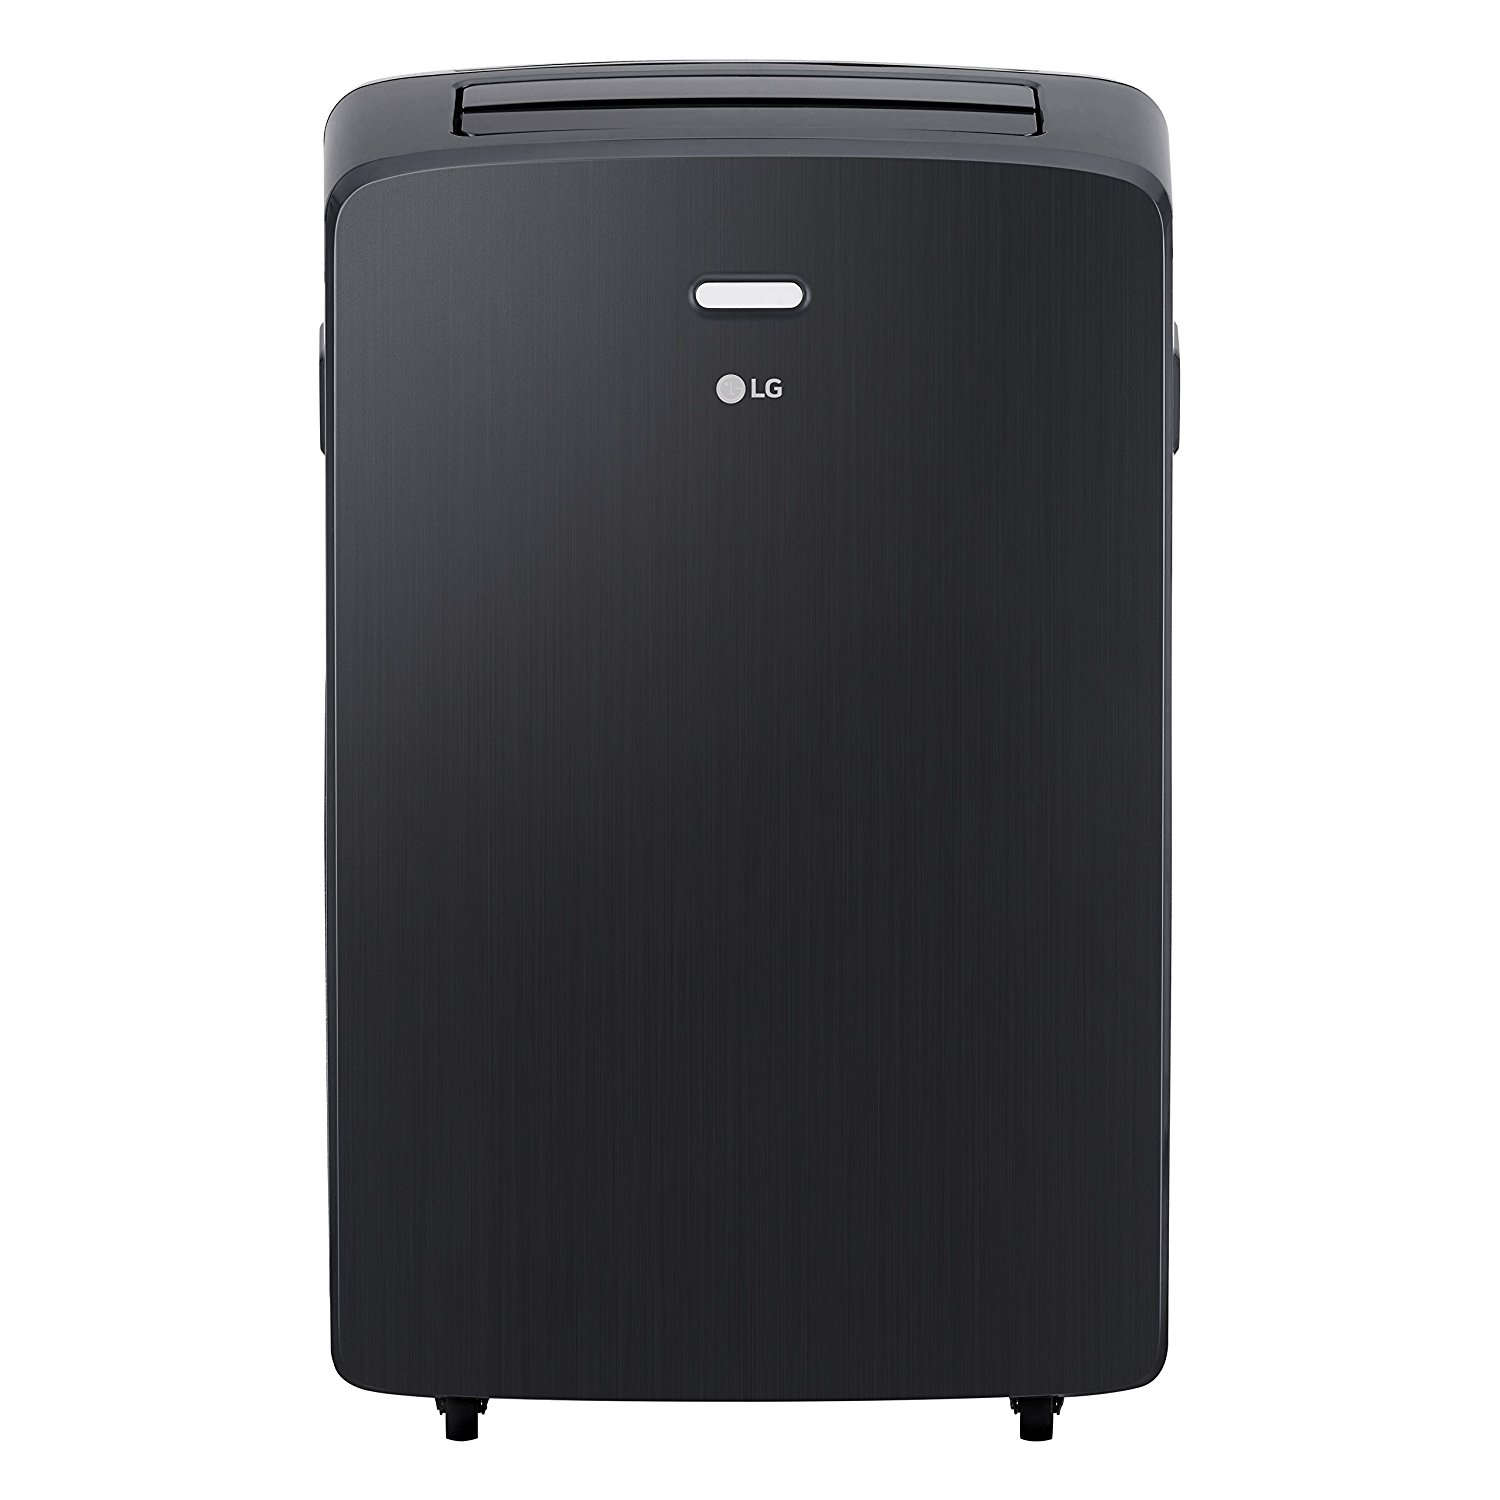 LG 12,000 BTU 115-Volt Portable Air Conditioner with Remote Control, Factory Reconditioned